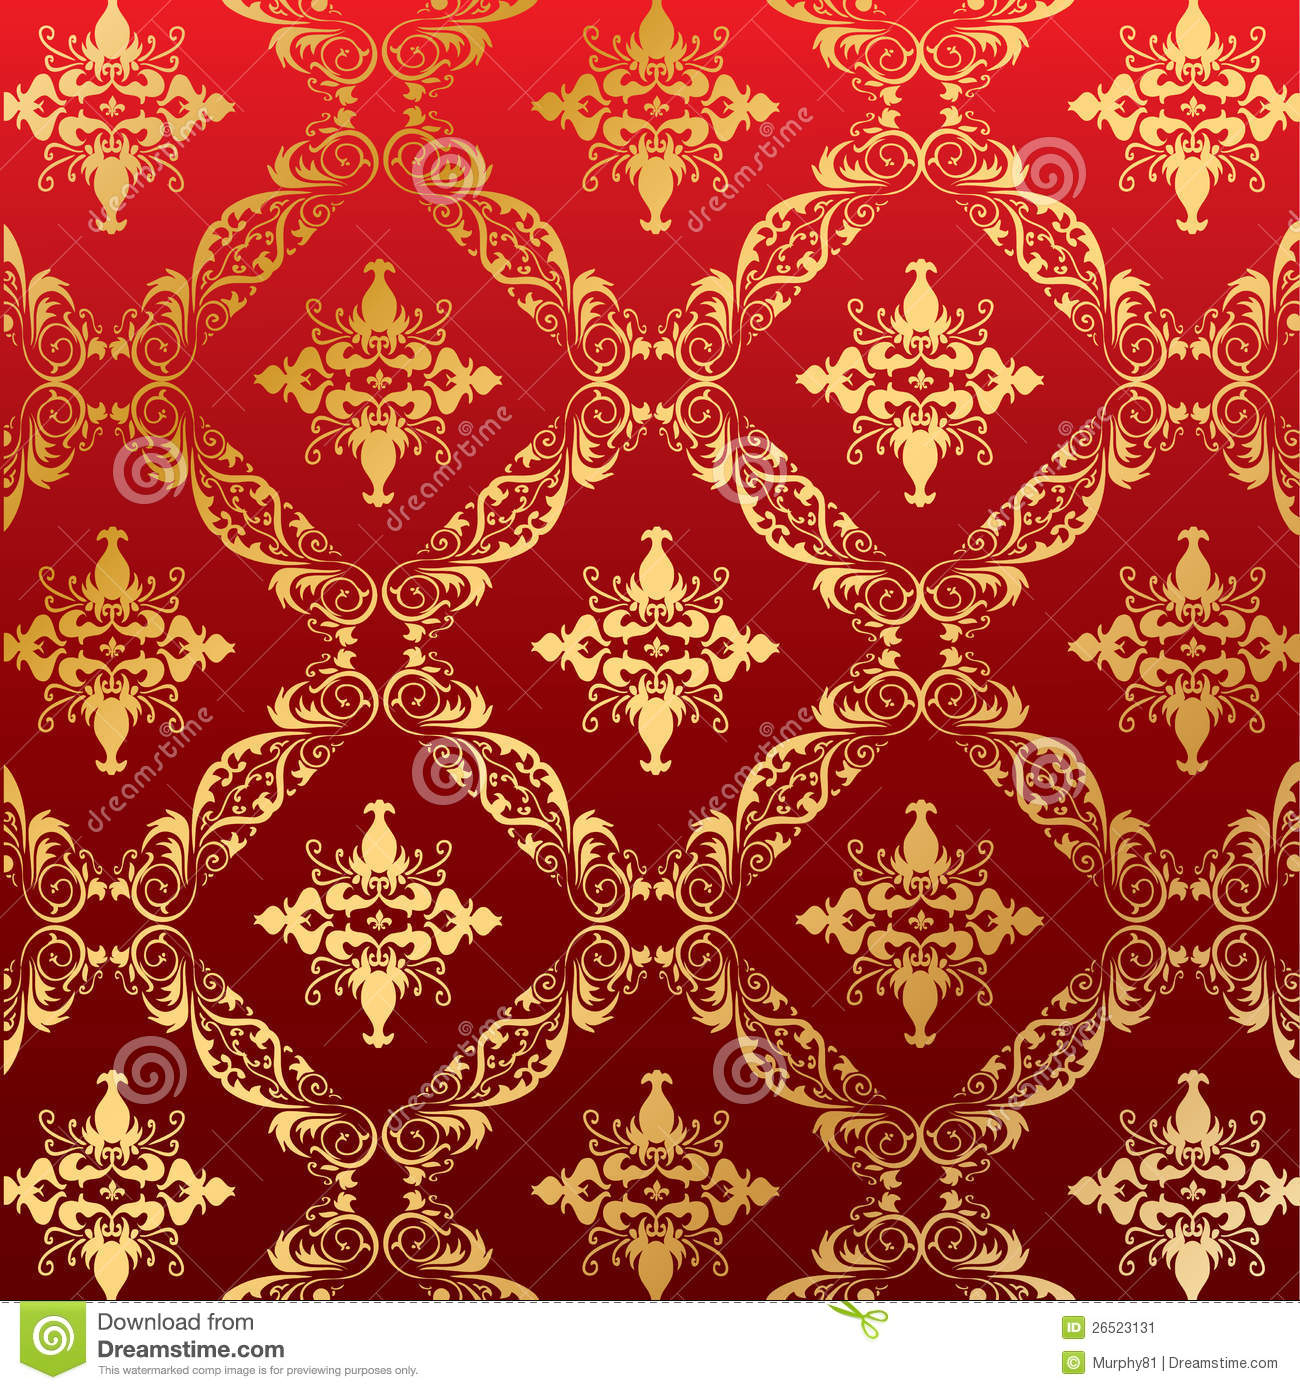 Royal Wallpaper Designs